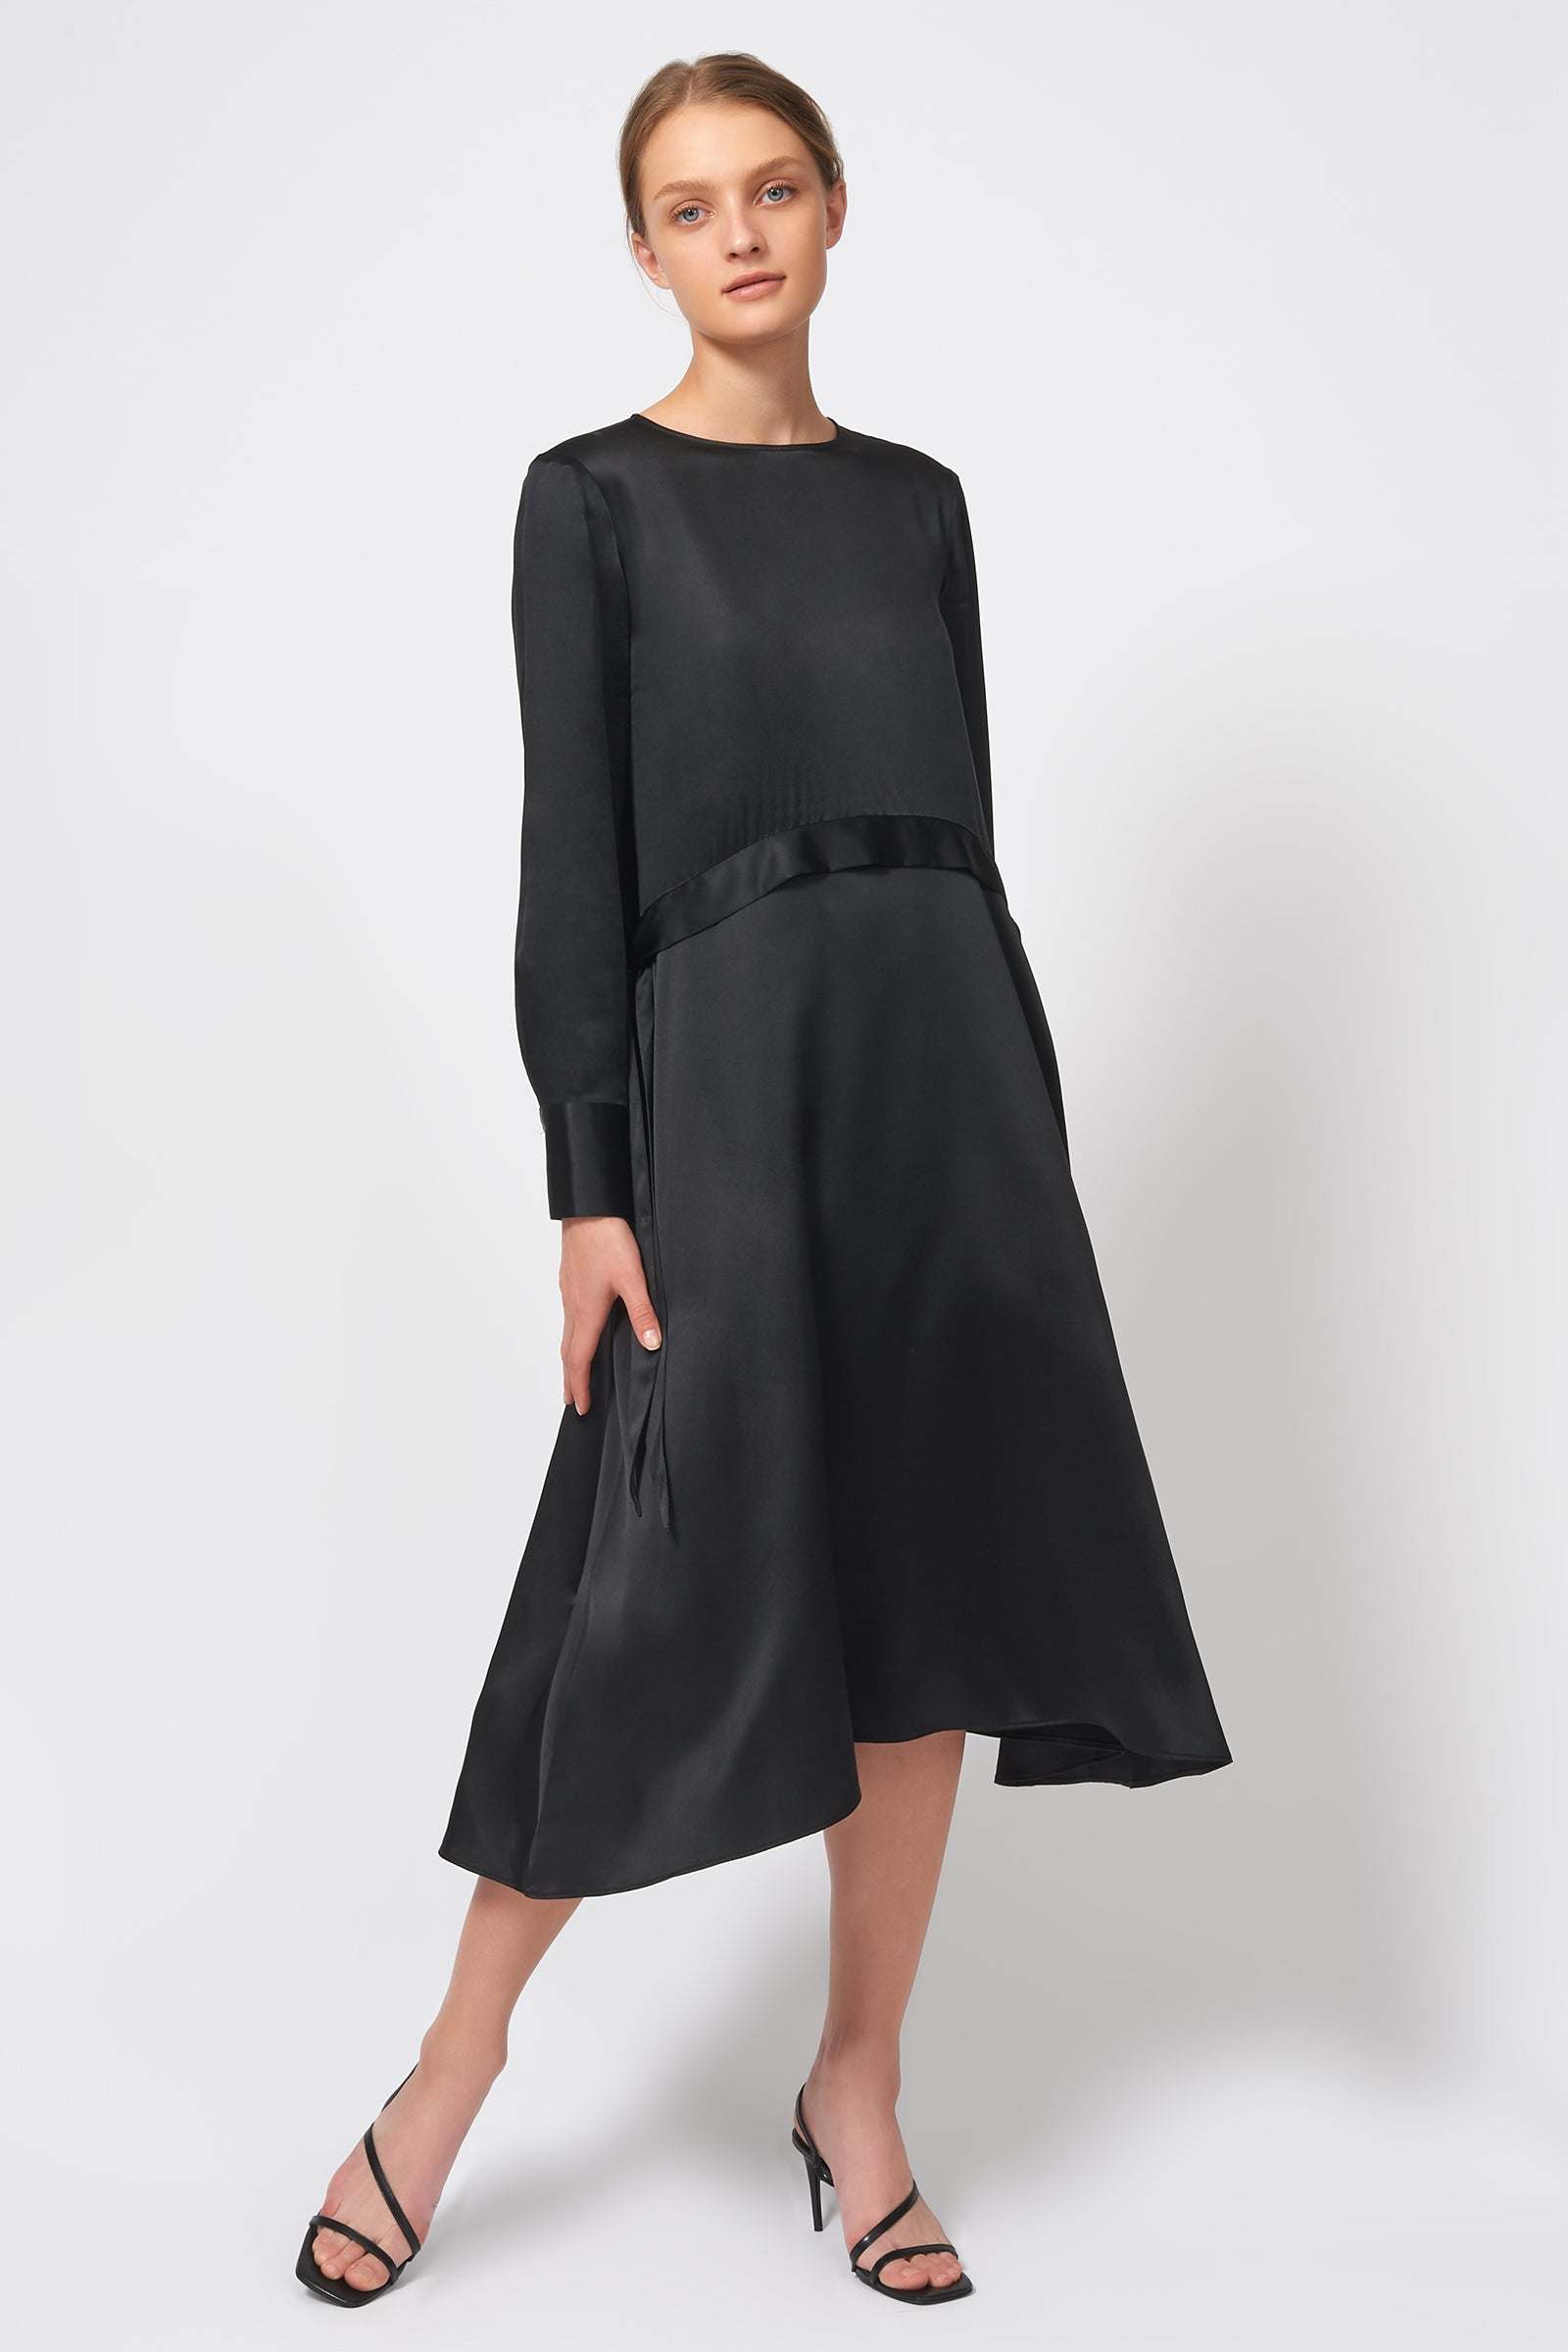 Kal Rieman Side Tie Midi Dress in Black on Model Front View